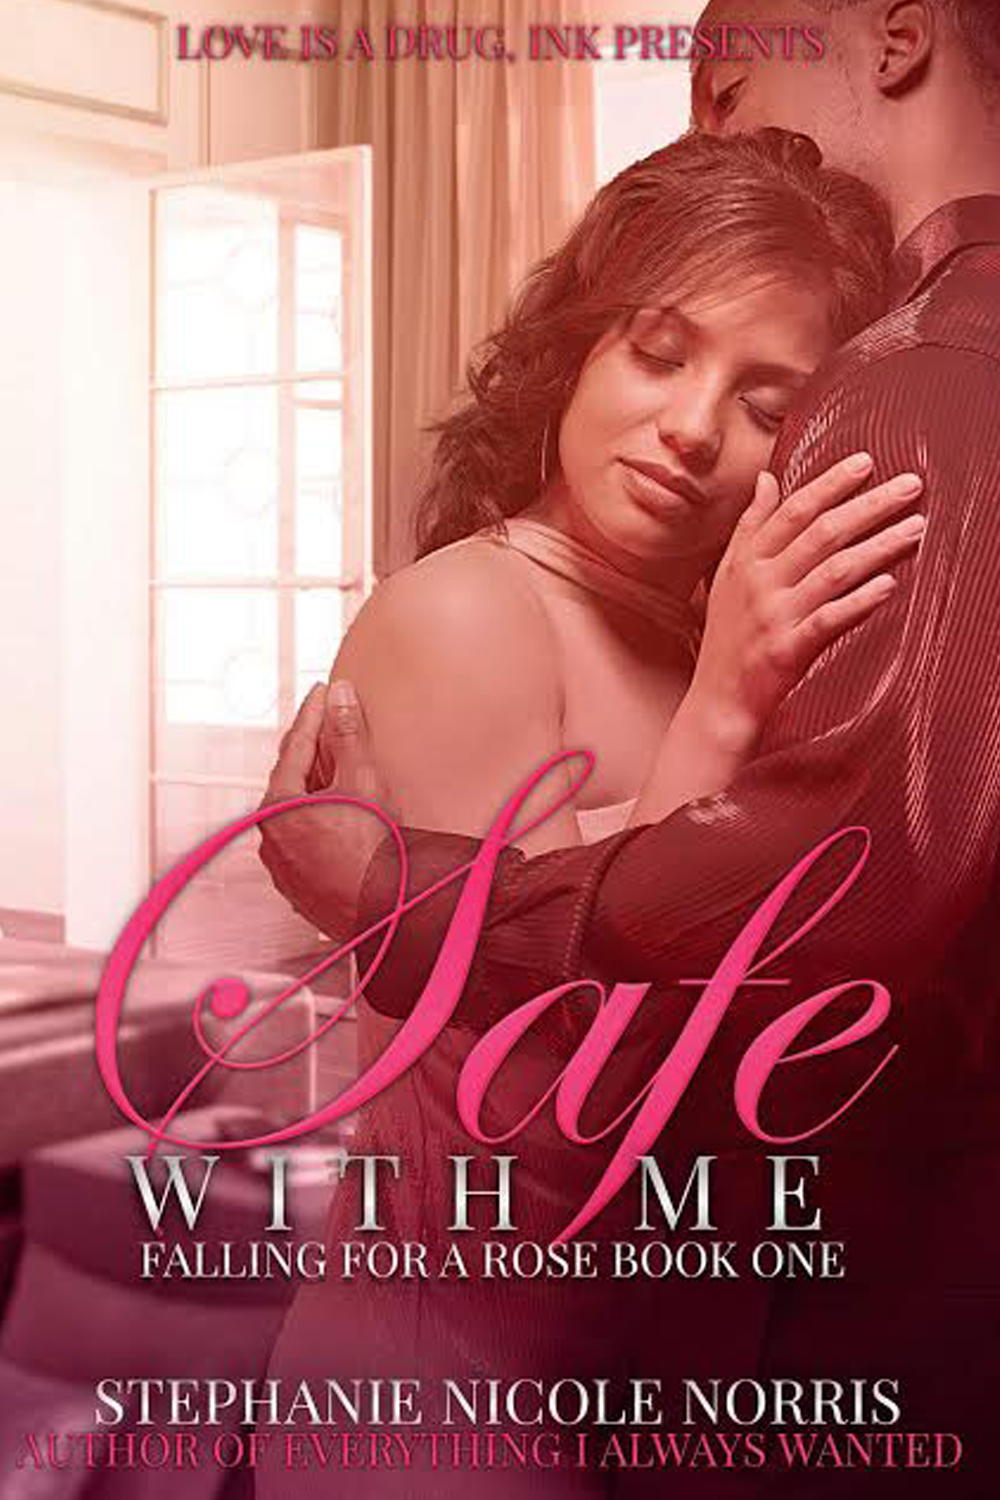 Safe With Me is Available on Audio!